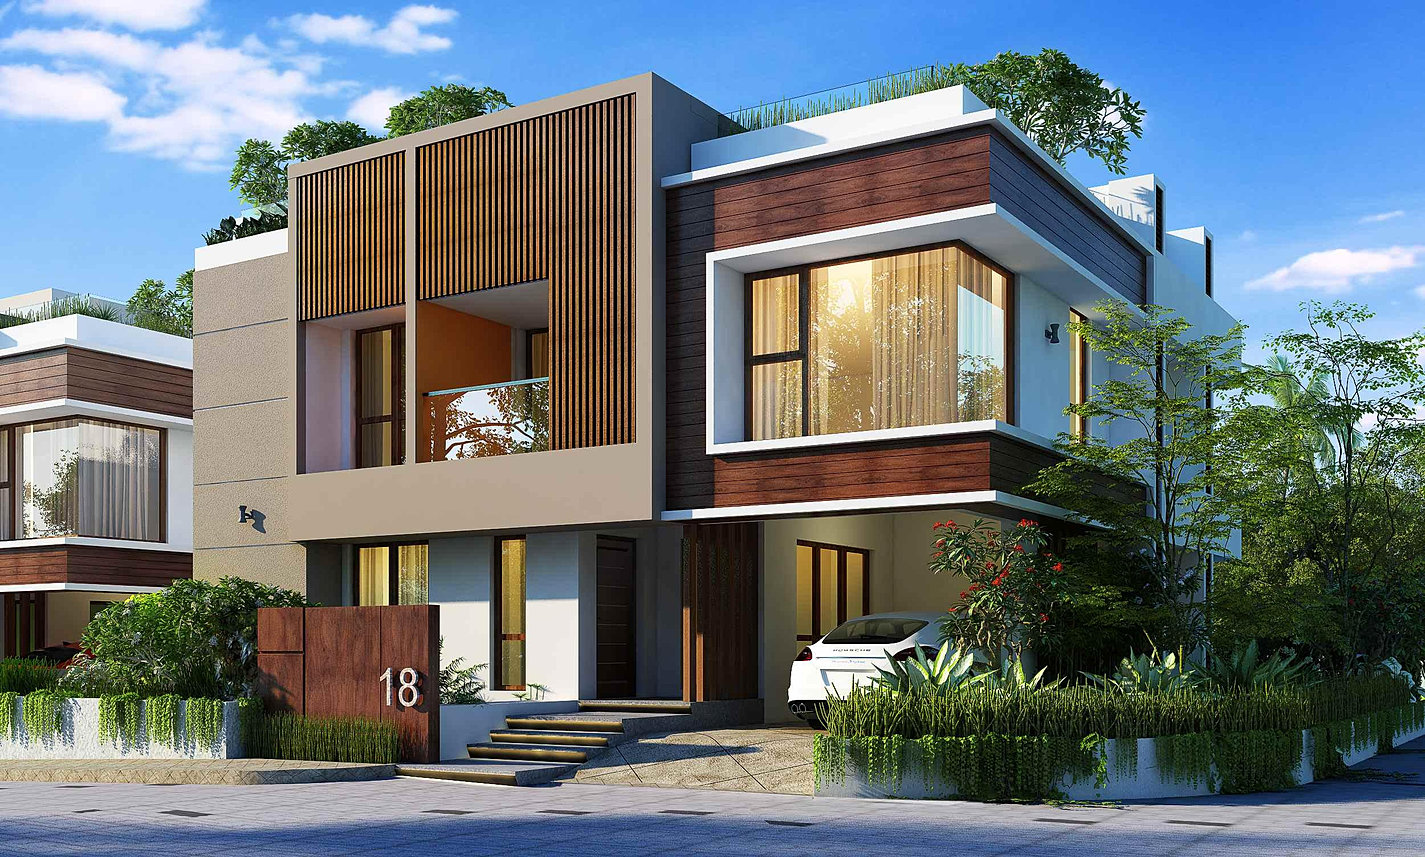 Apartments flats villas in trivandrum villa and flats for Villas apartments